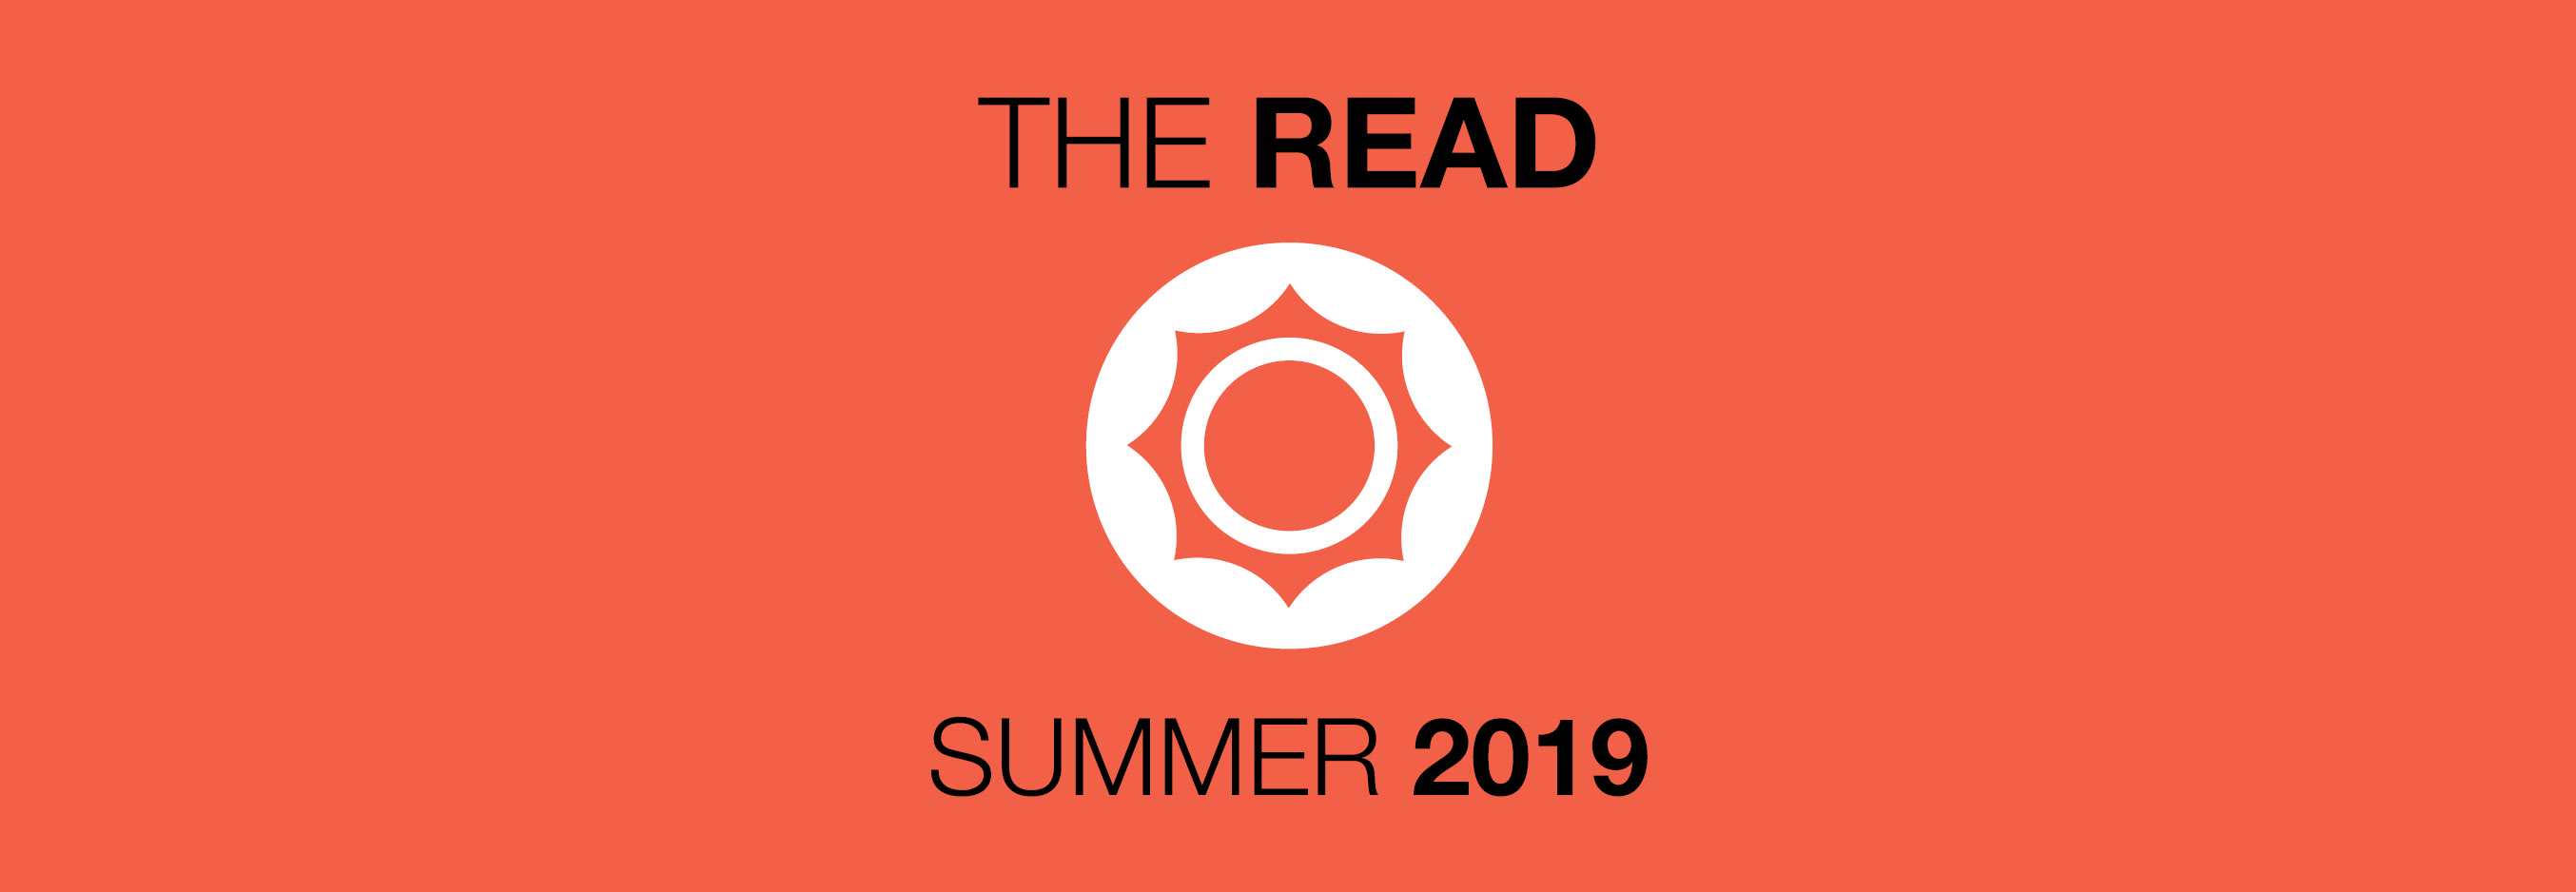 The Read - Summer 2019